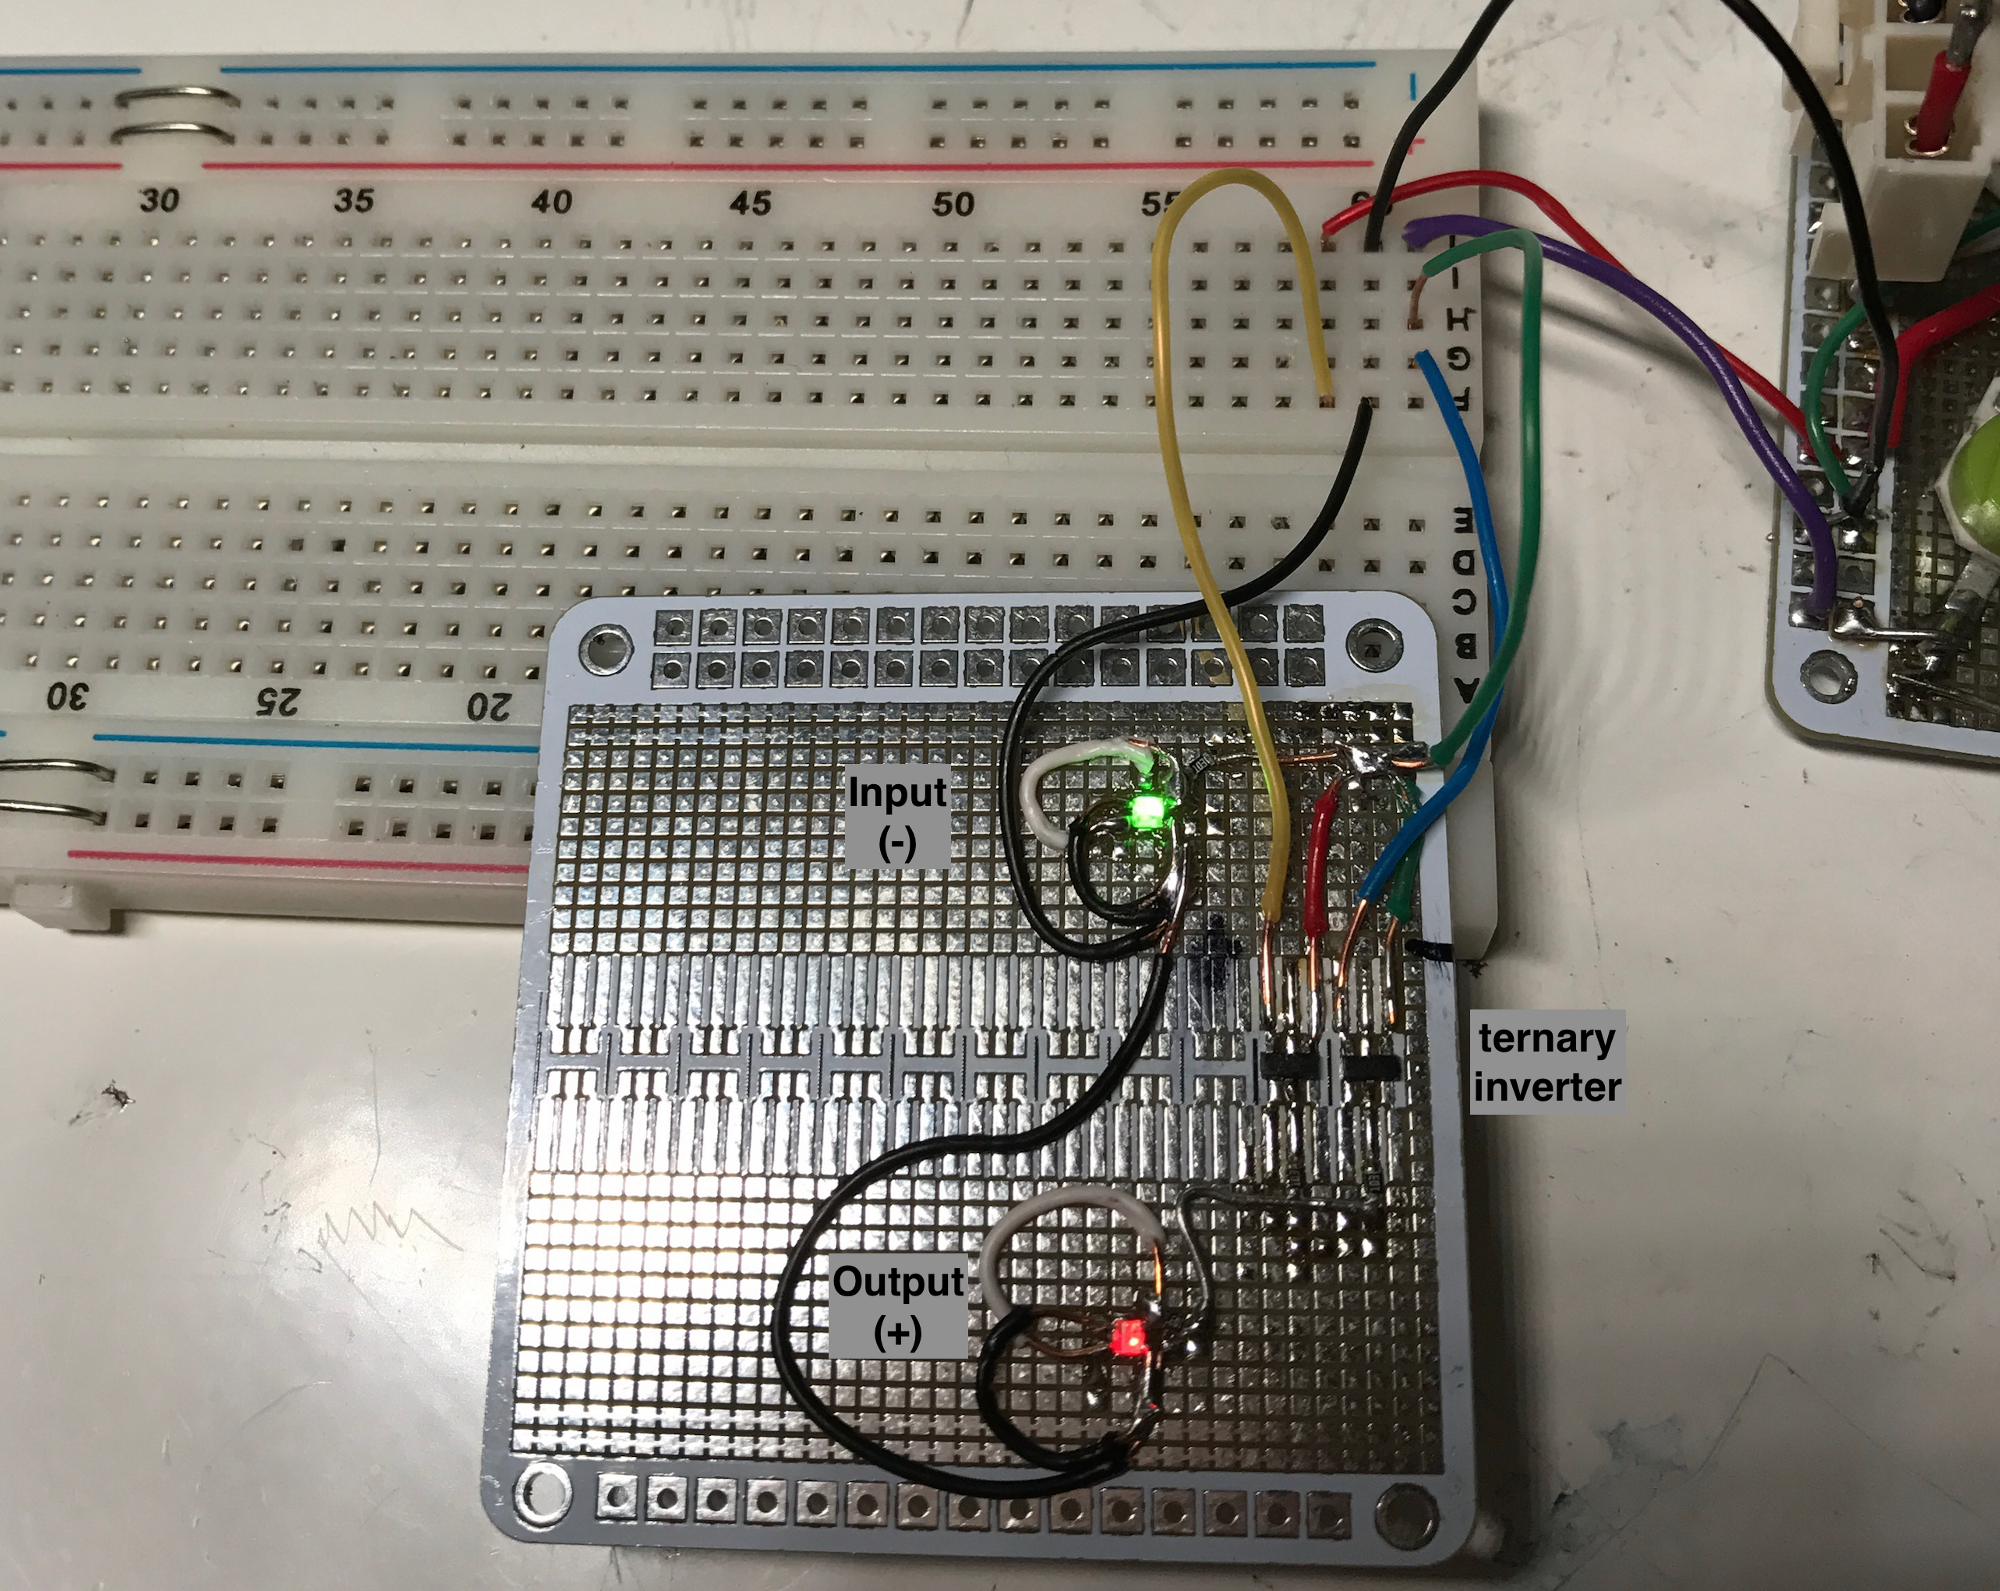 Exploring Ternary Logic Building Inverters Using How To Organise Electronic Components Circuit Simulation If The Input Is Changed A Positive Red Then Inverted Output Negative Green And Off